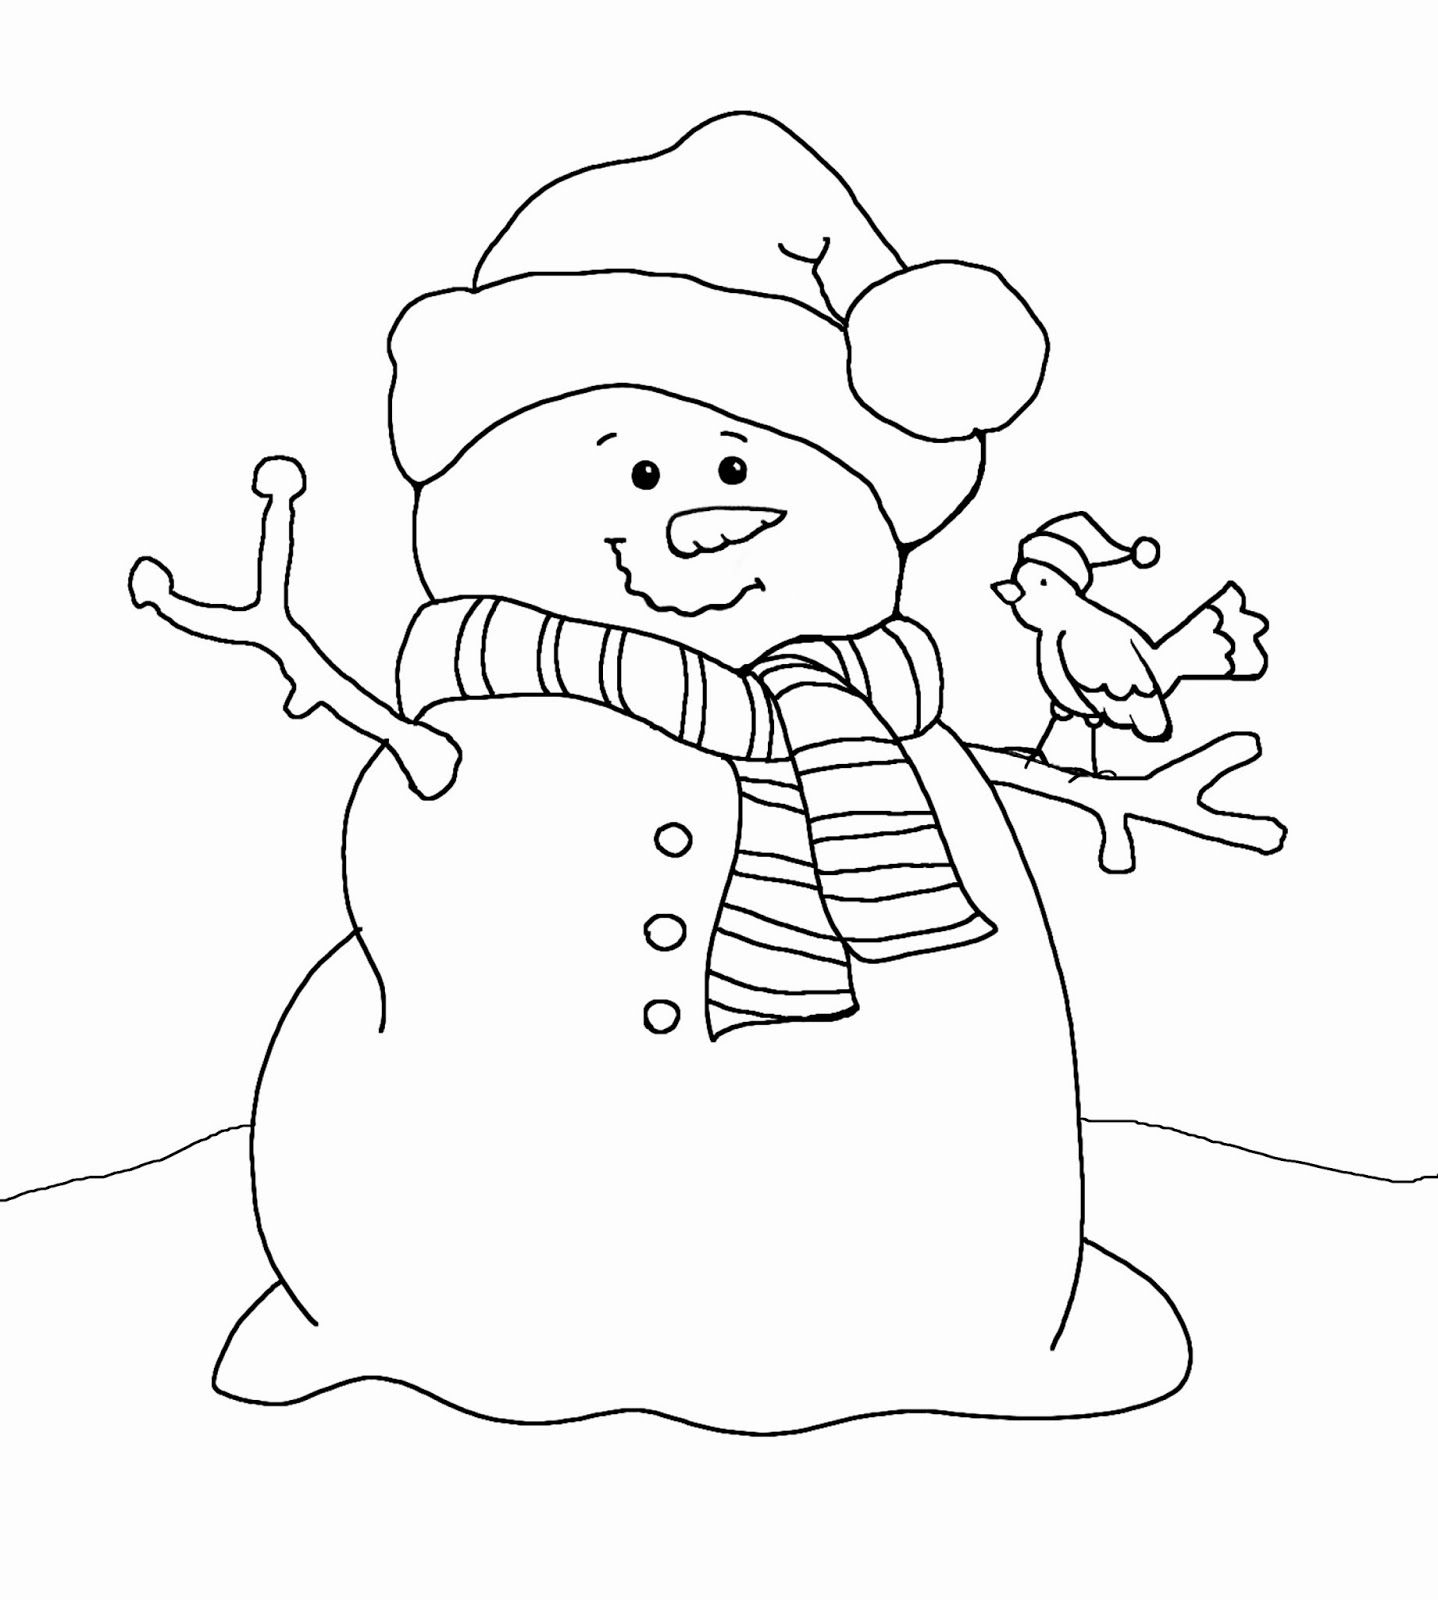 snowman coloring pages - photo#29